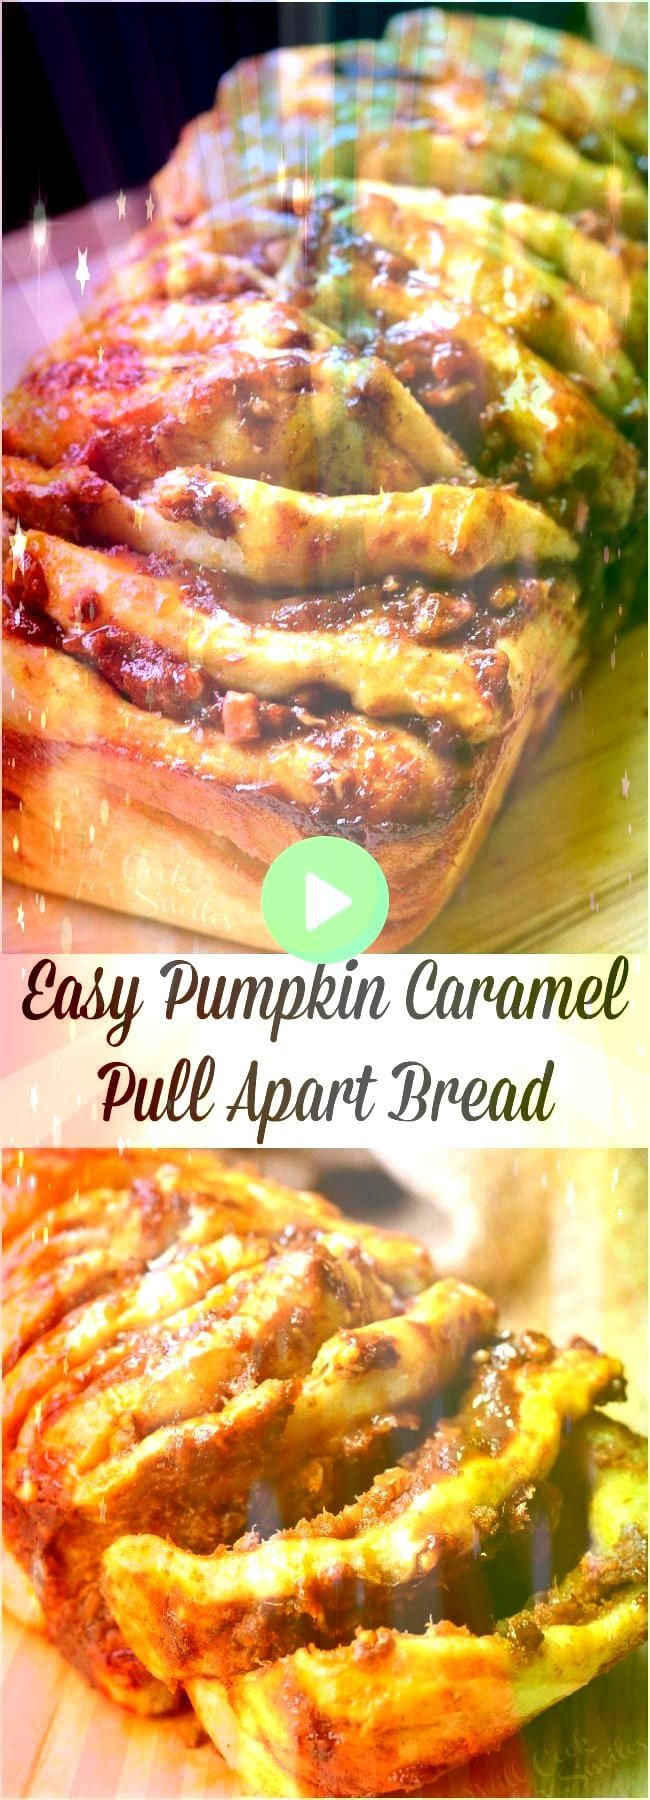 Caramel Pumpkin Pull Apart Bread Quick and easy pull apart bread where each layer is slathered in a sweet combination of pumpkin caramel and pecansEasy Caramel Pumpkin Pu...